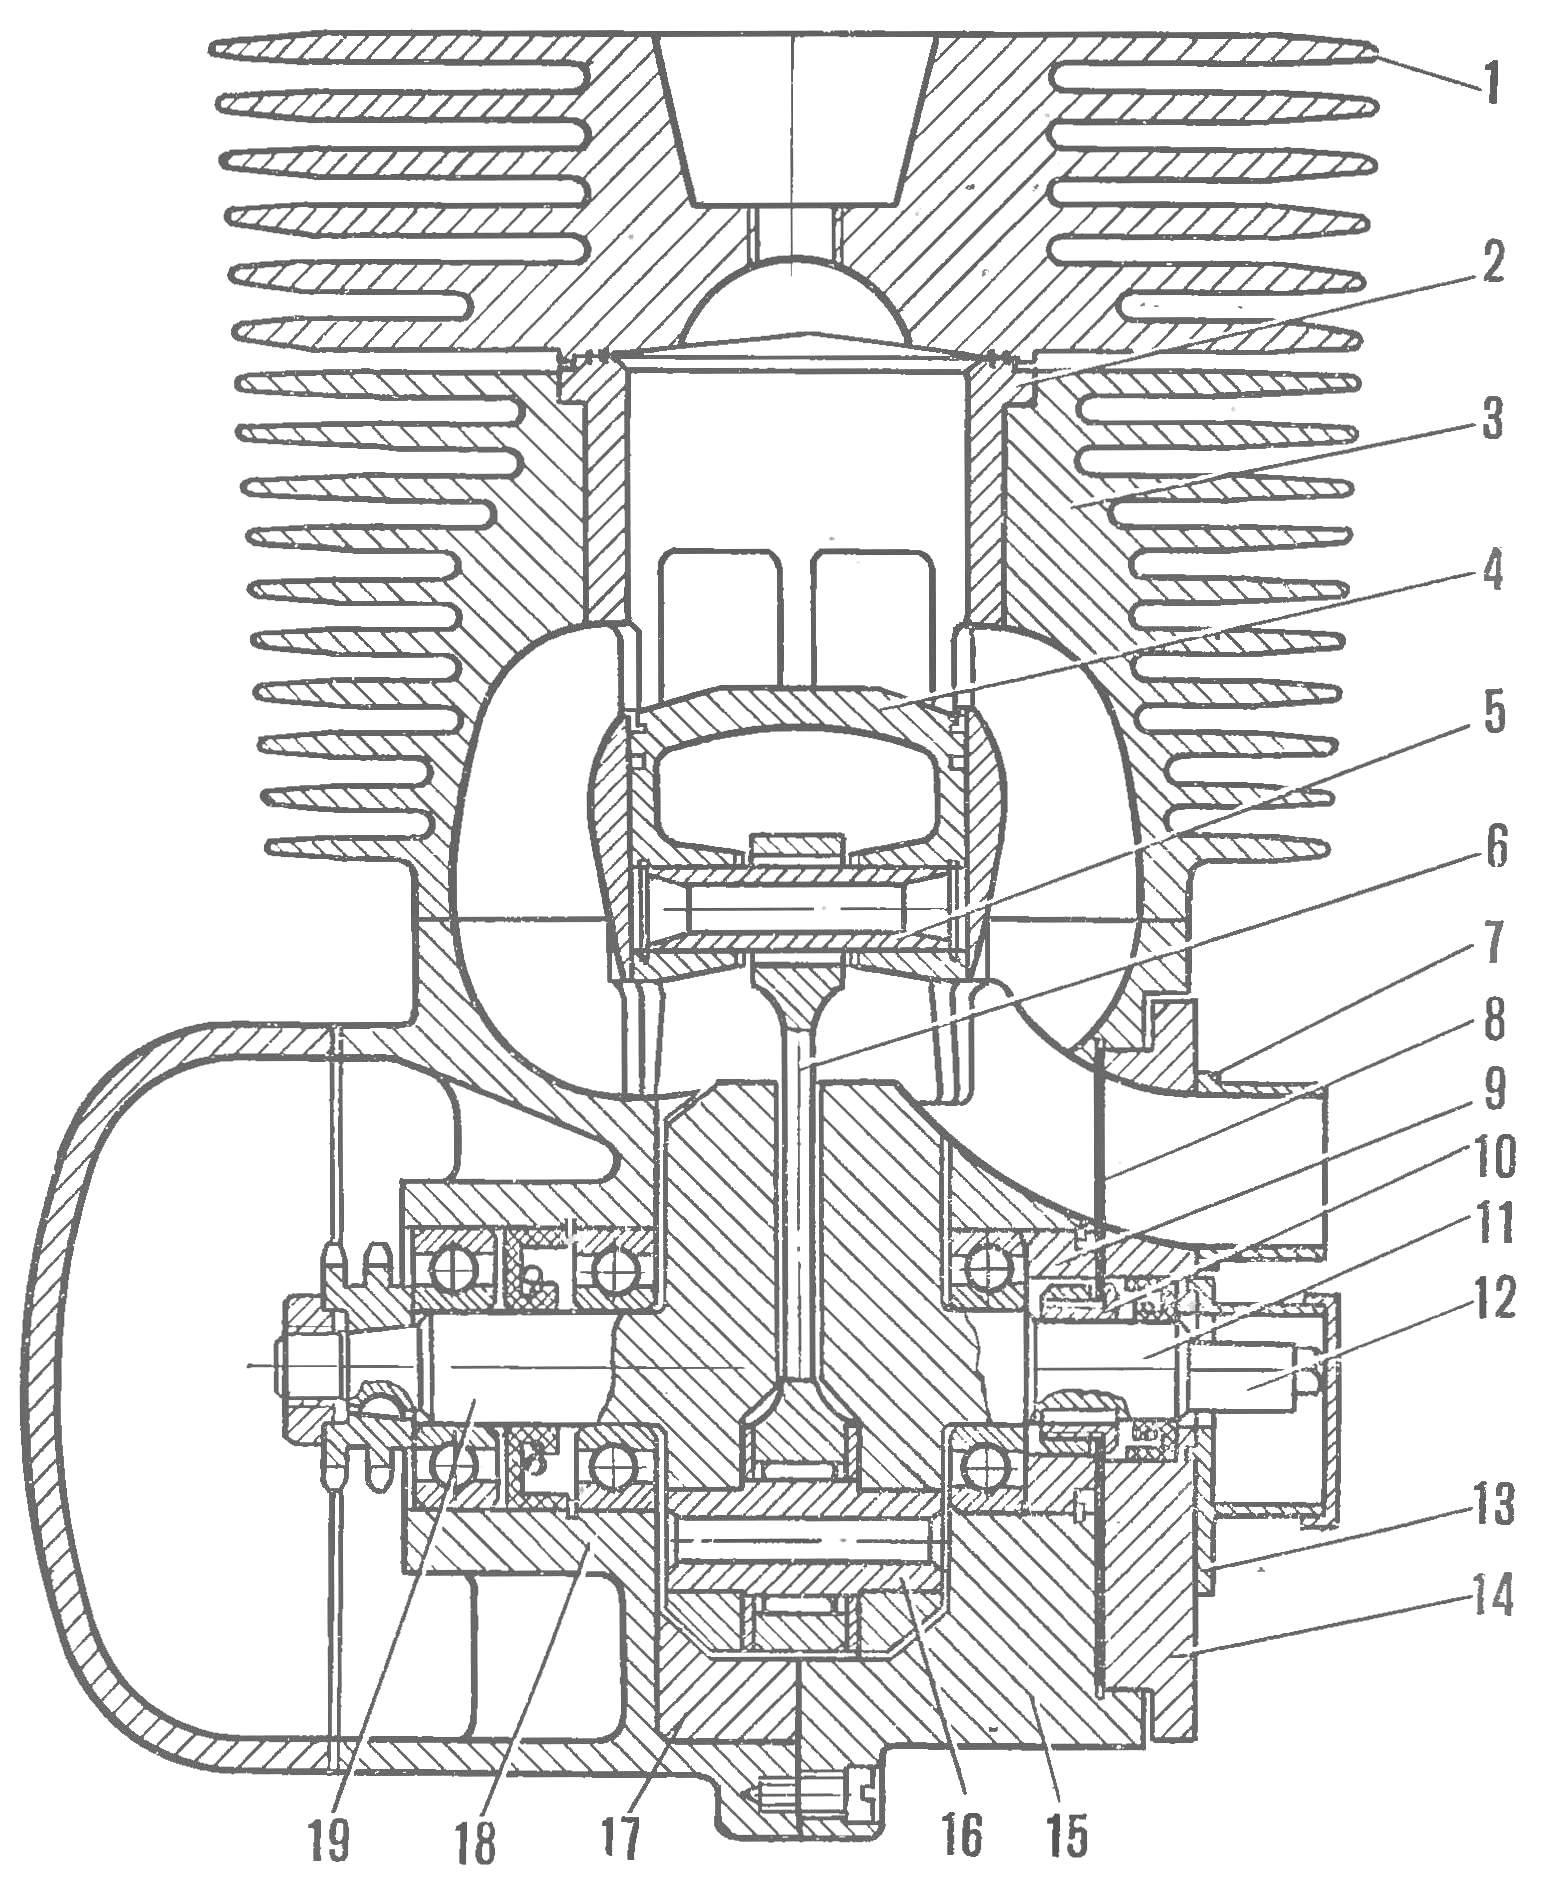 Fig. 1. The motor section (rear view)